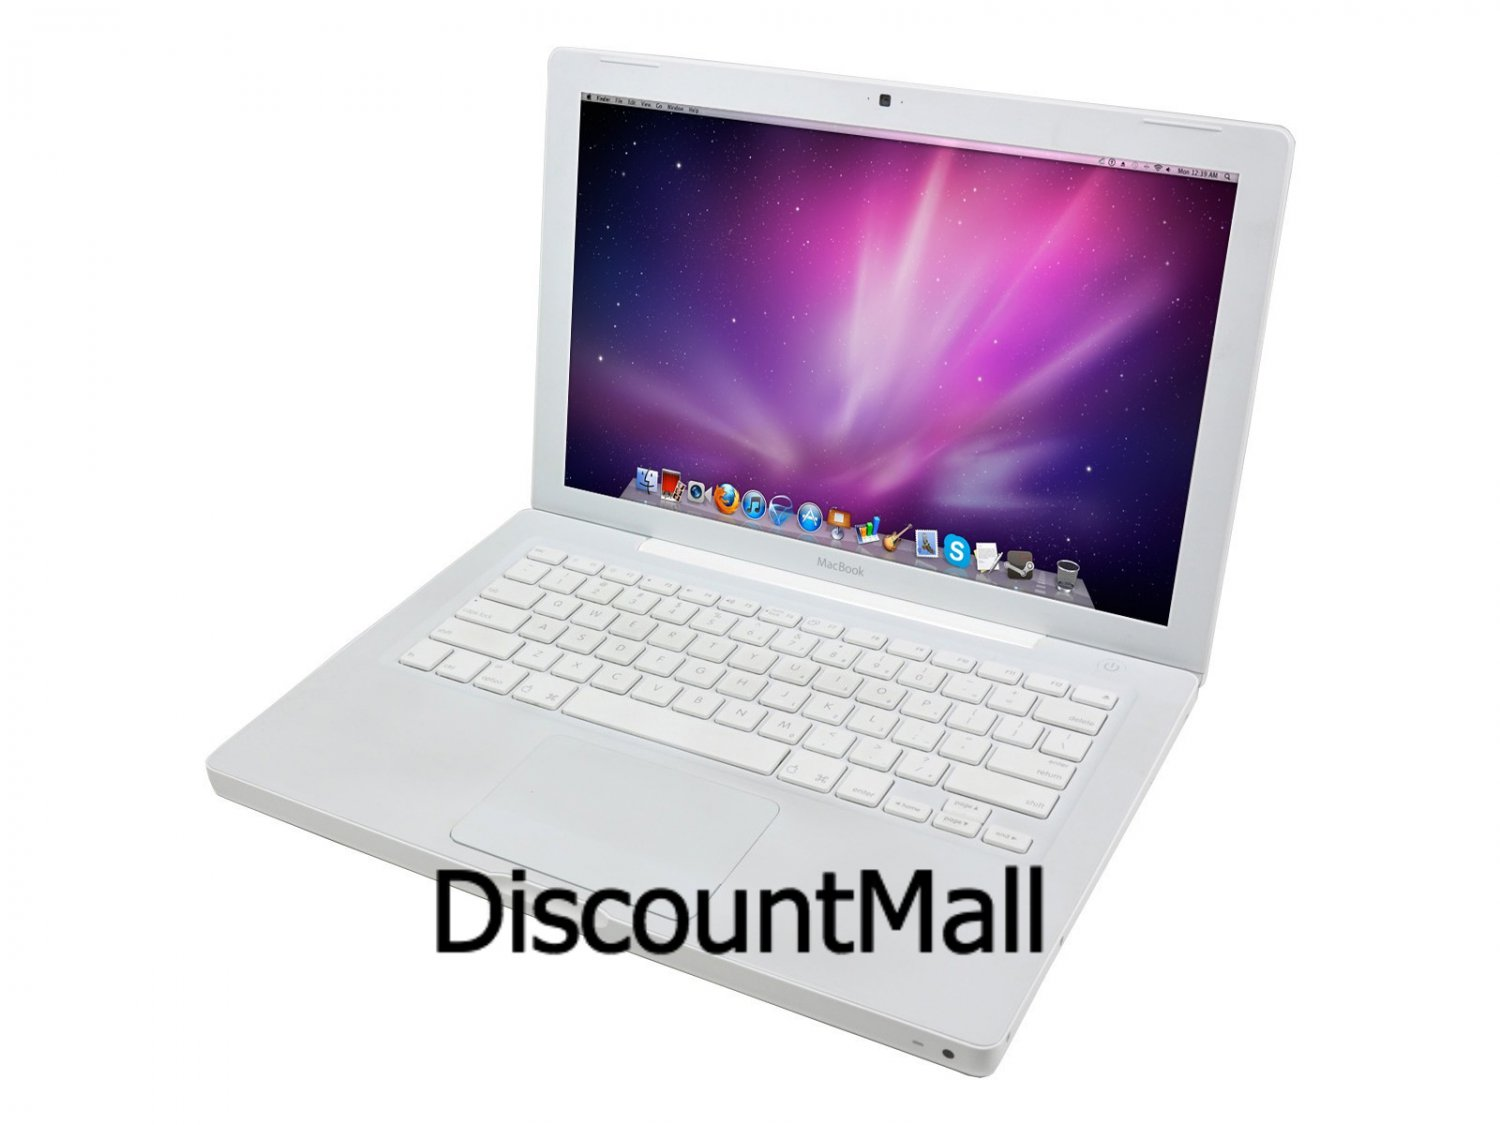 "Apple MacBook Laptop Notebook 2.0Ghz Core 2 Duo 1GB RAM 80GB HD 13.3"" Screen - Office 11 - OS X 10.6"